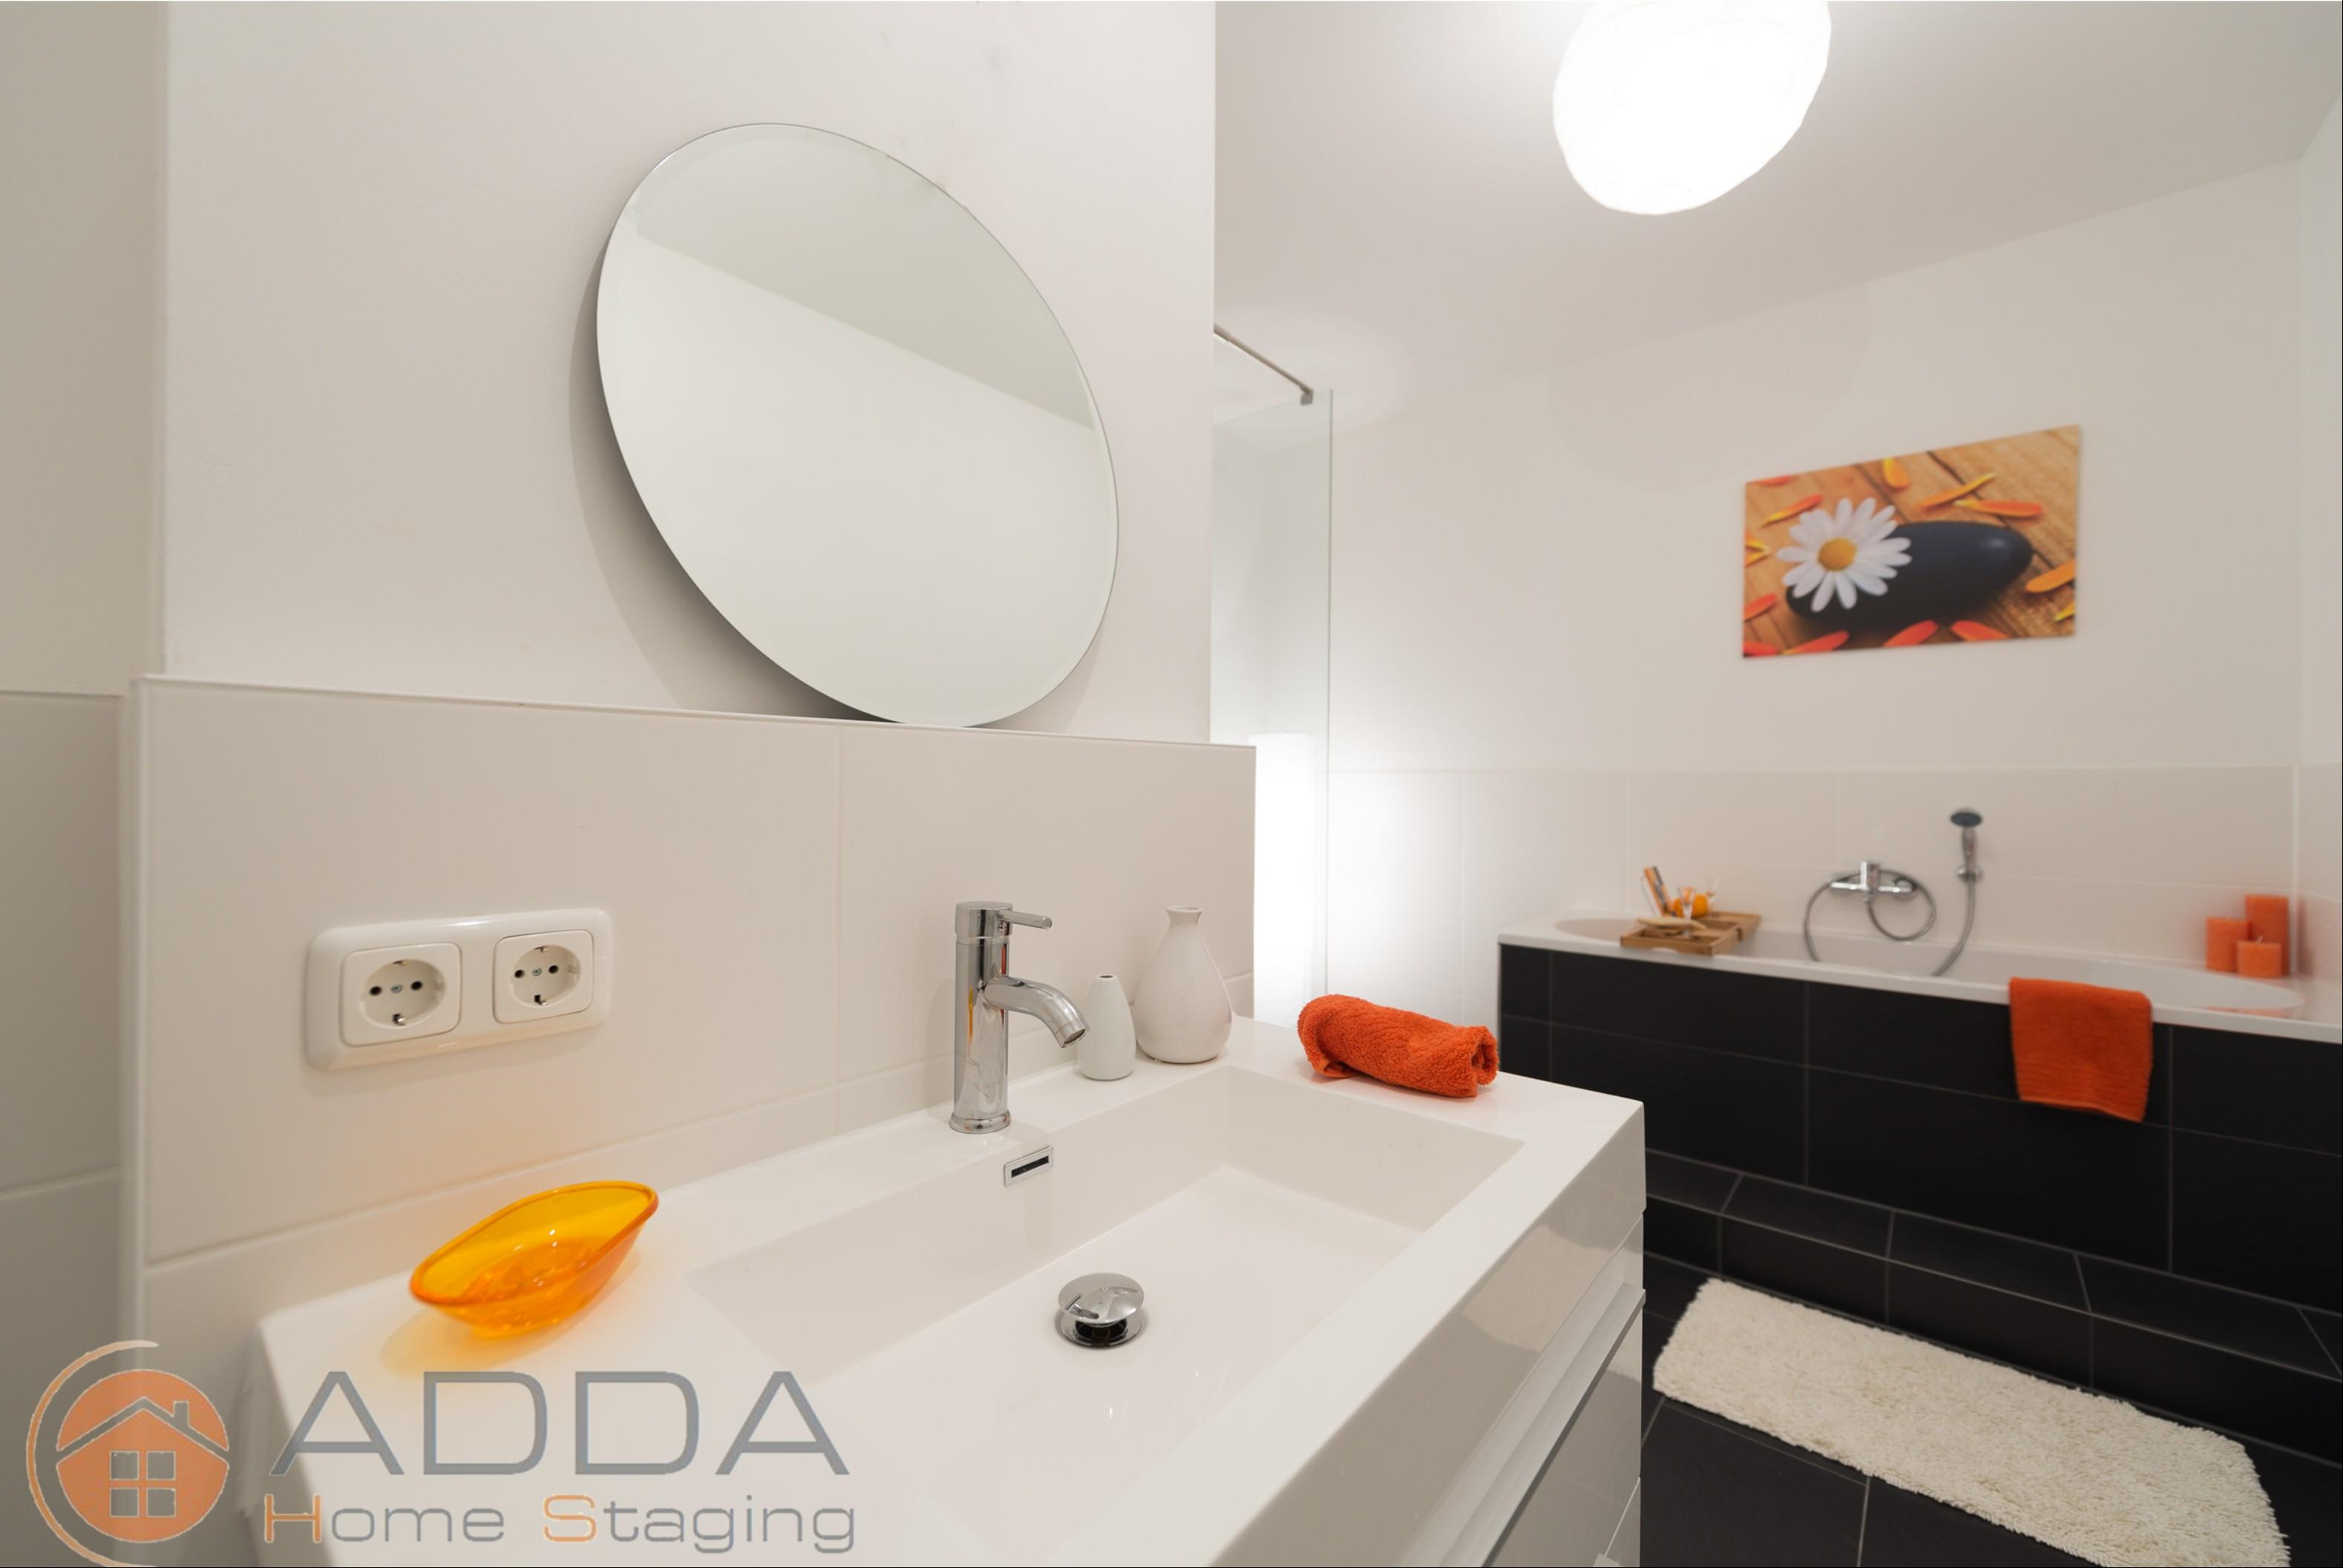 Bad nach dem Home Staging #badidee ©ADDA Home Staging